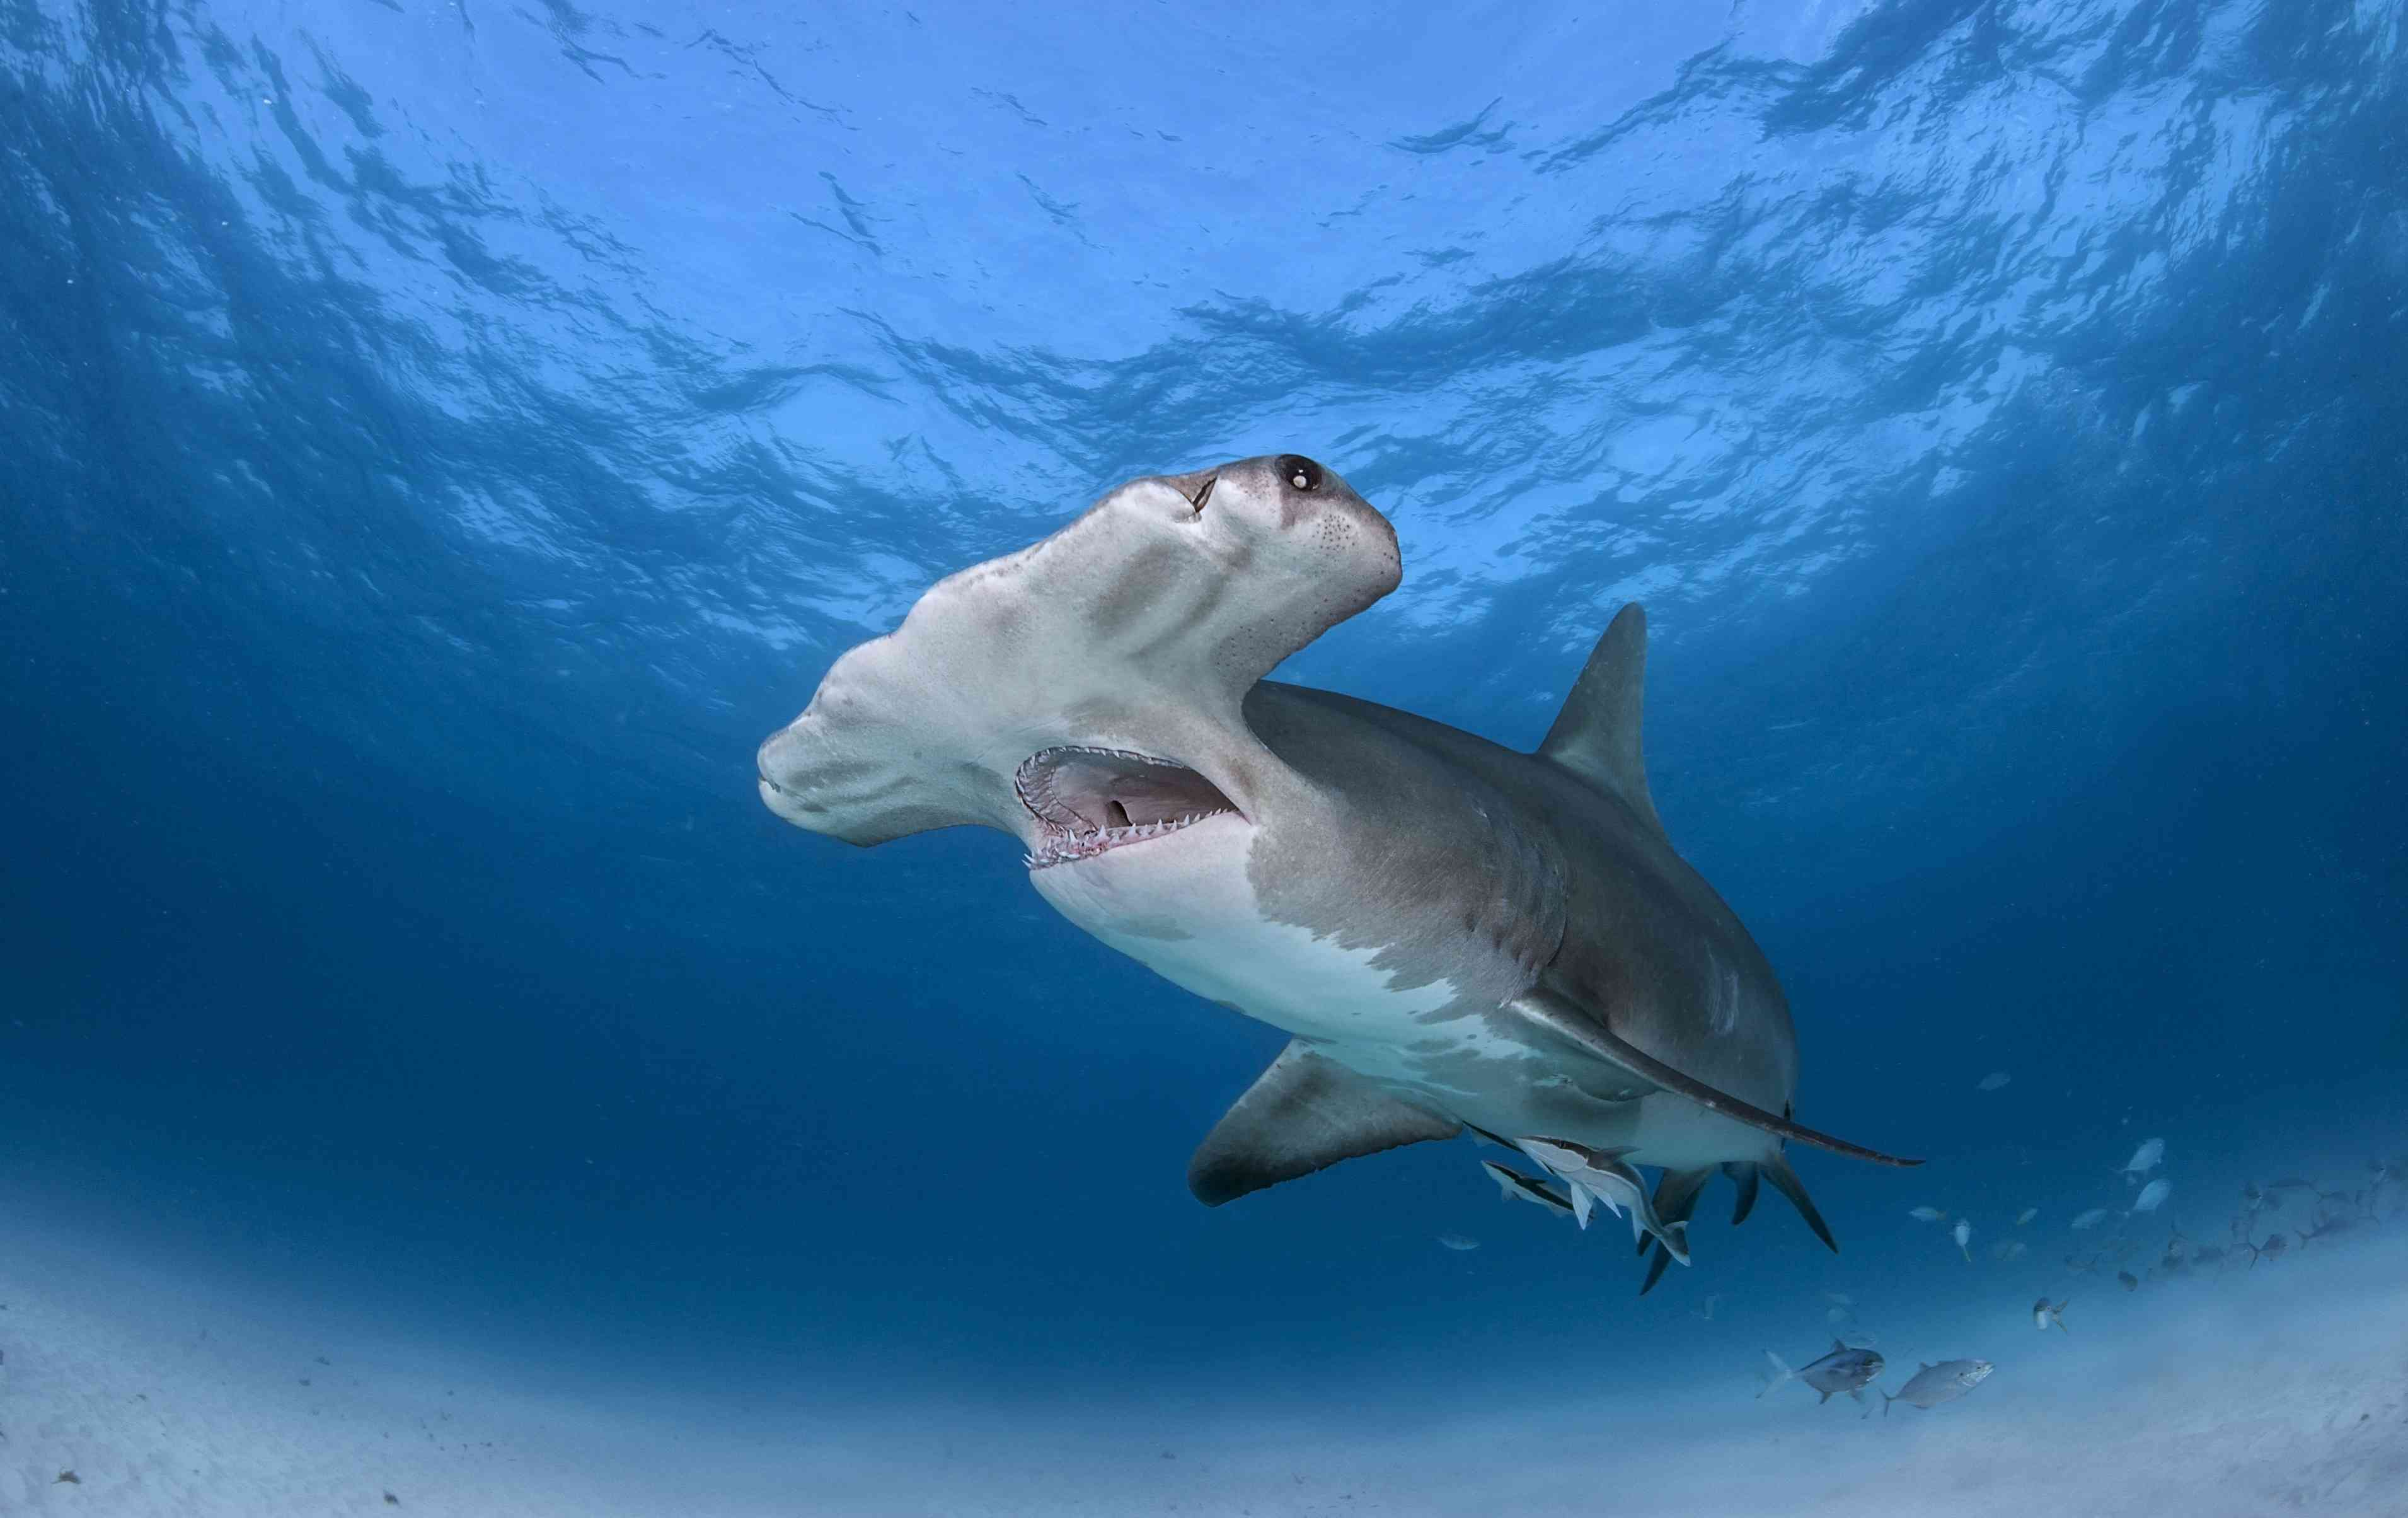 A hammerhead shark swimming near the ocean's surface with its mouth open.